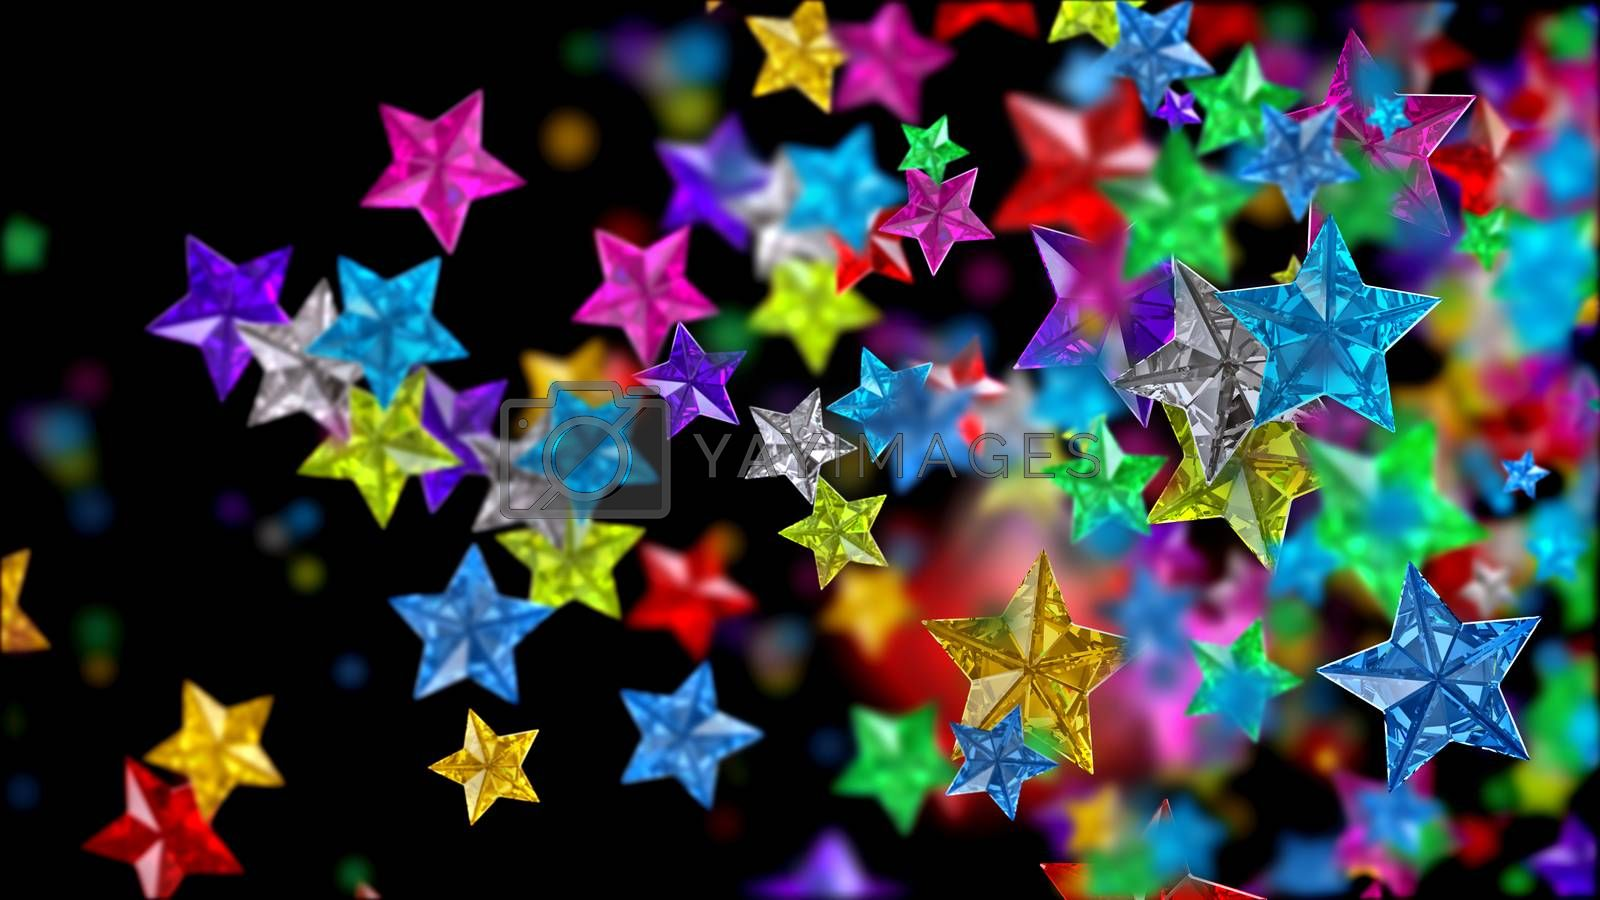 Glistening colourful glossy glass stars on the dark backdrop for any celebration or festive background, looks as luxury brilliants, rubies, sapphires and other gems